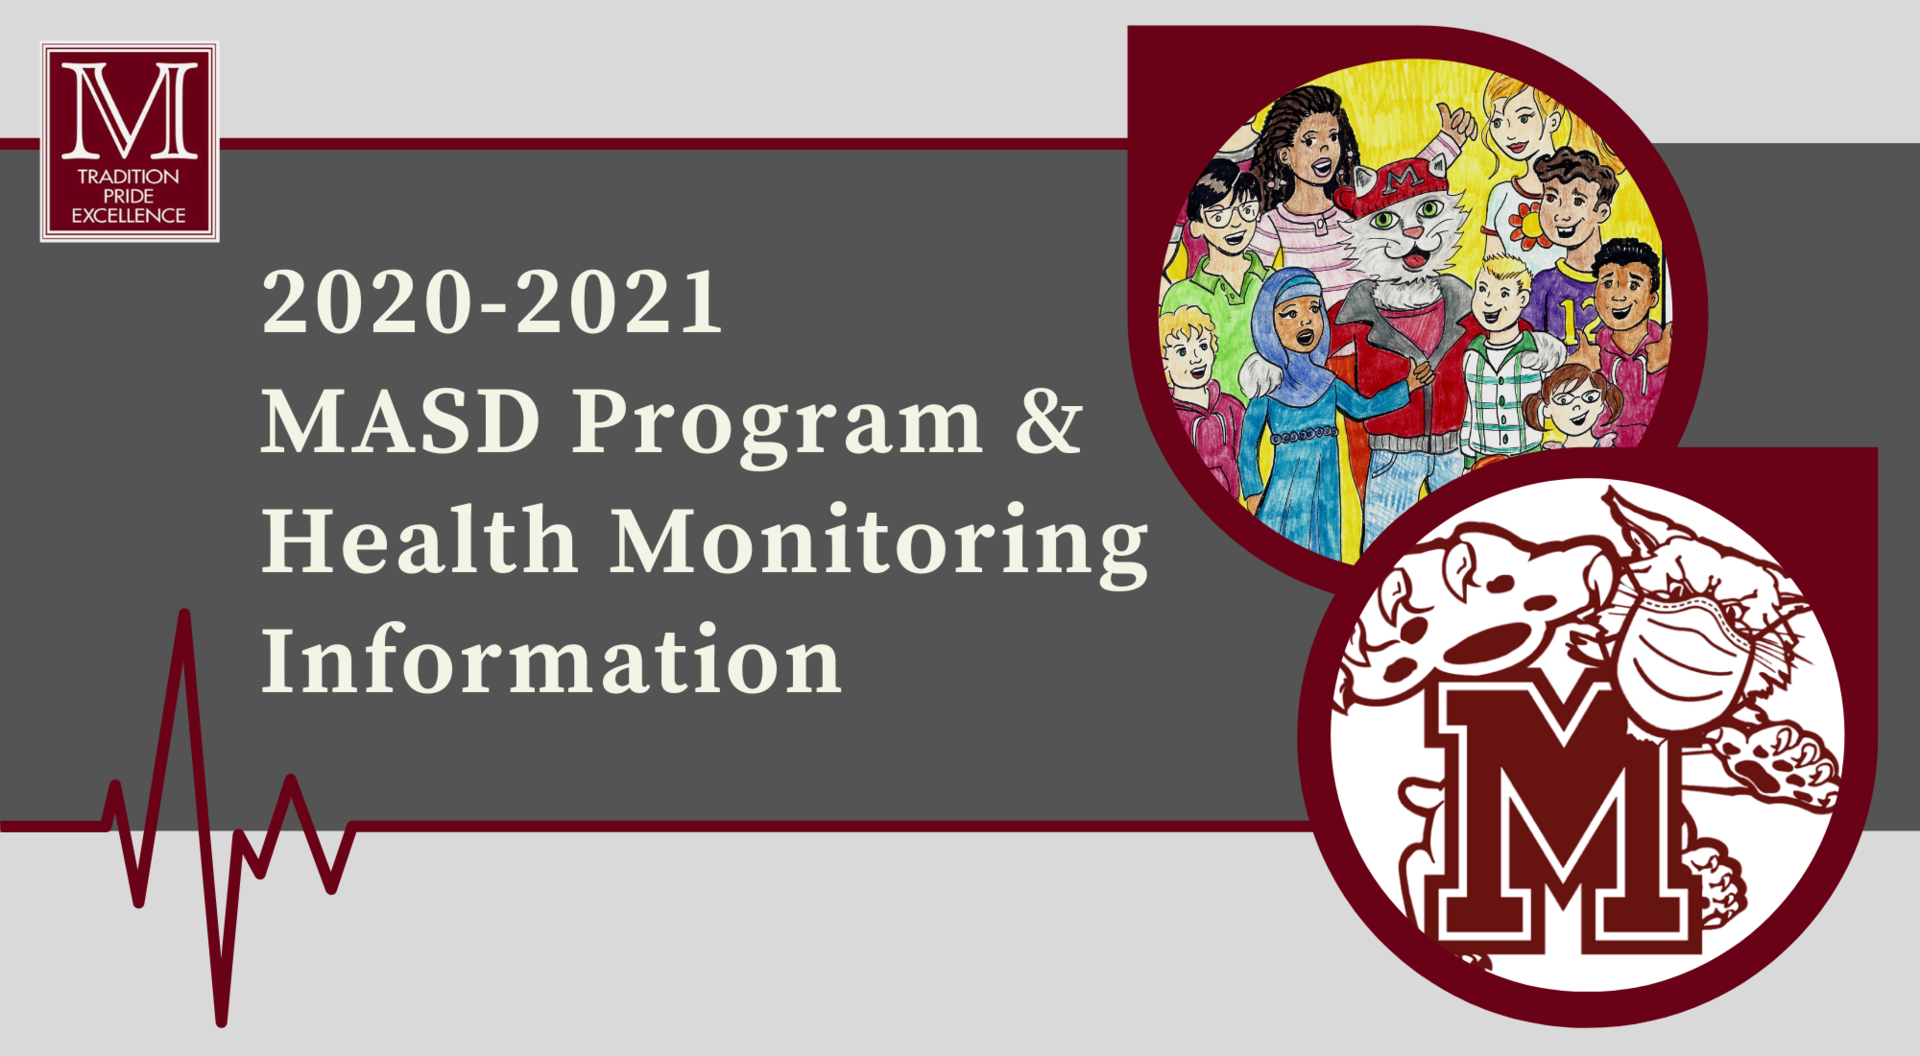 Program & Health Monitoring